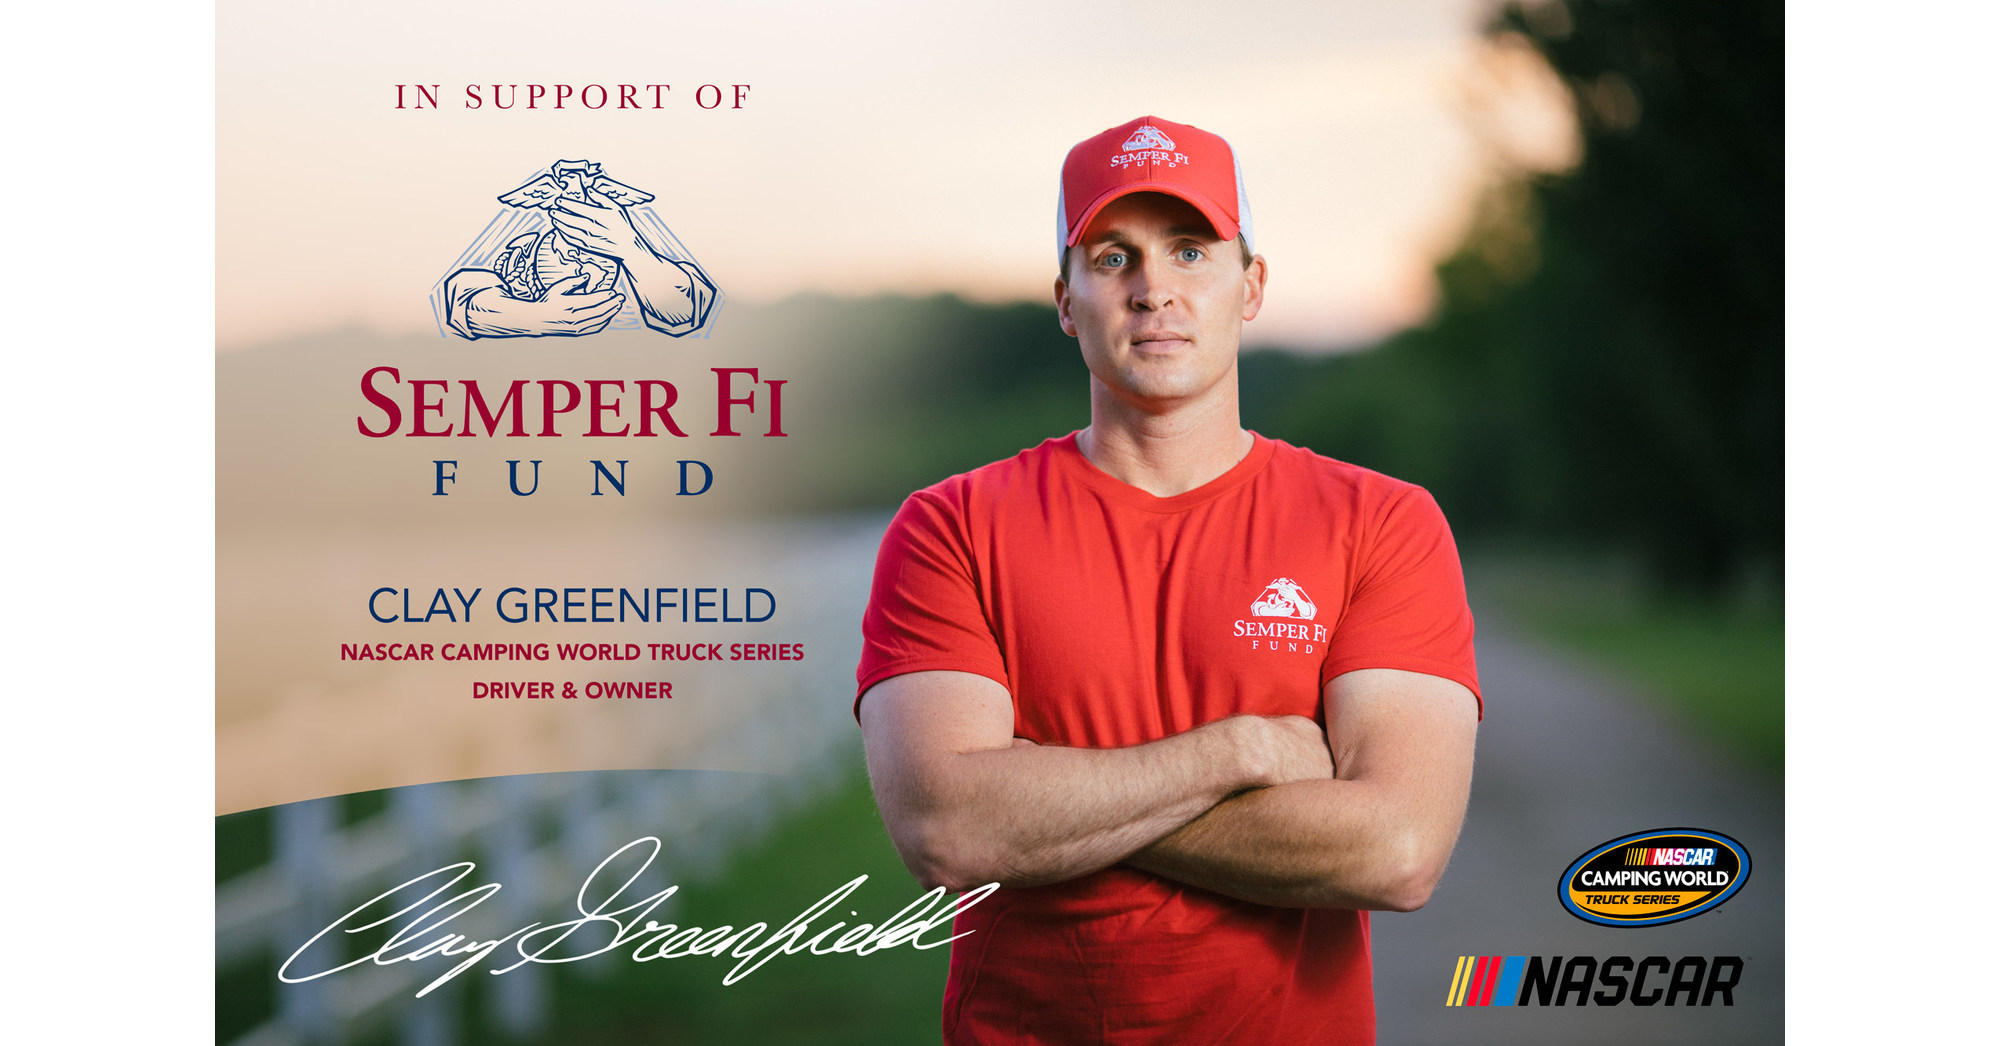 Clay greenfield races for semper fi fund this weekend in for Semper fi fund rating